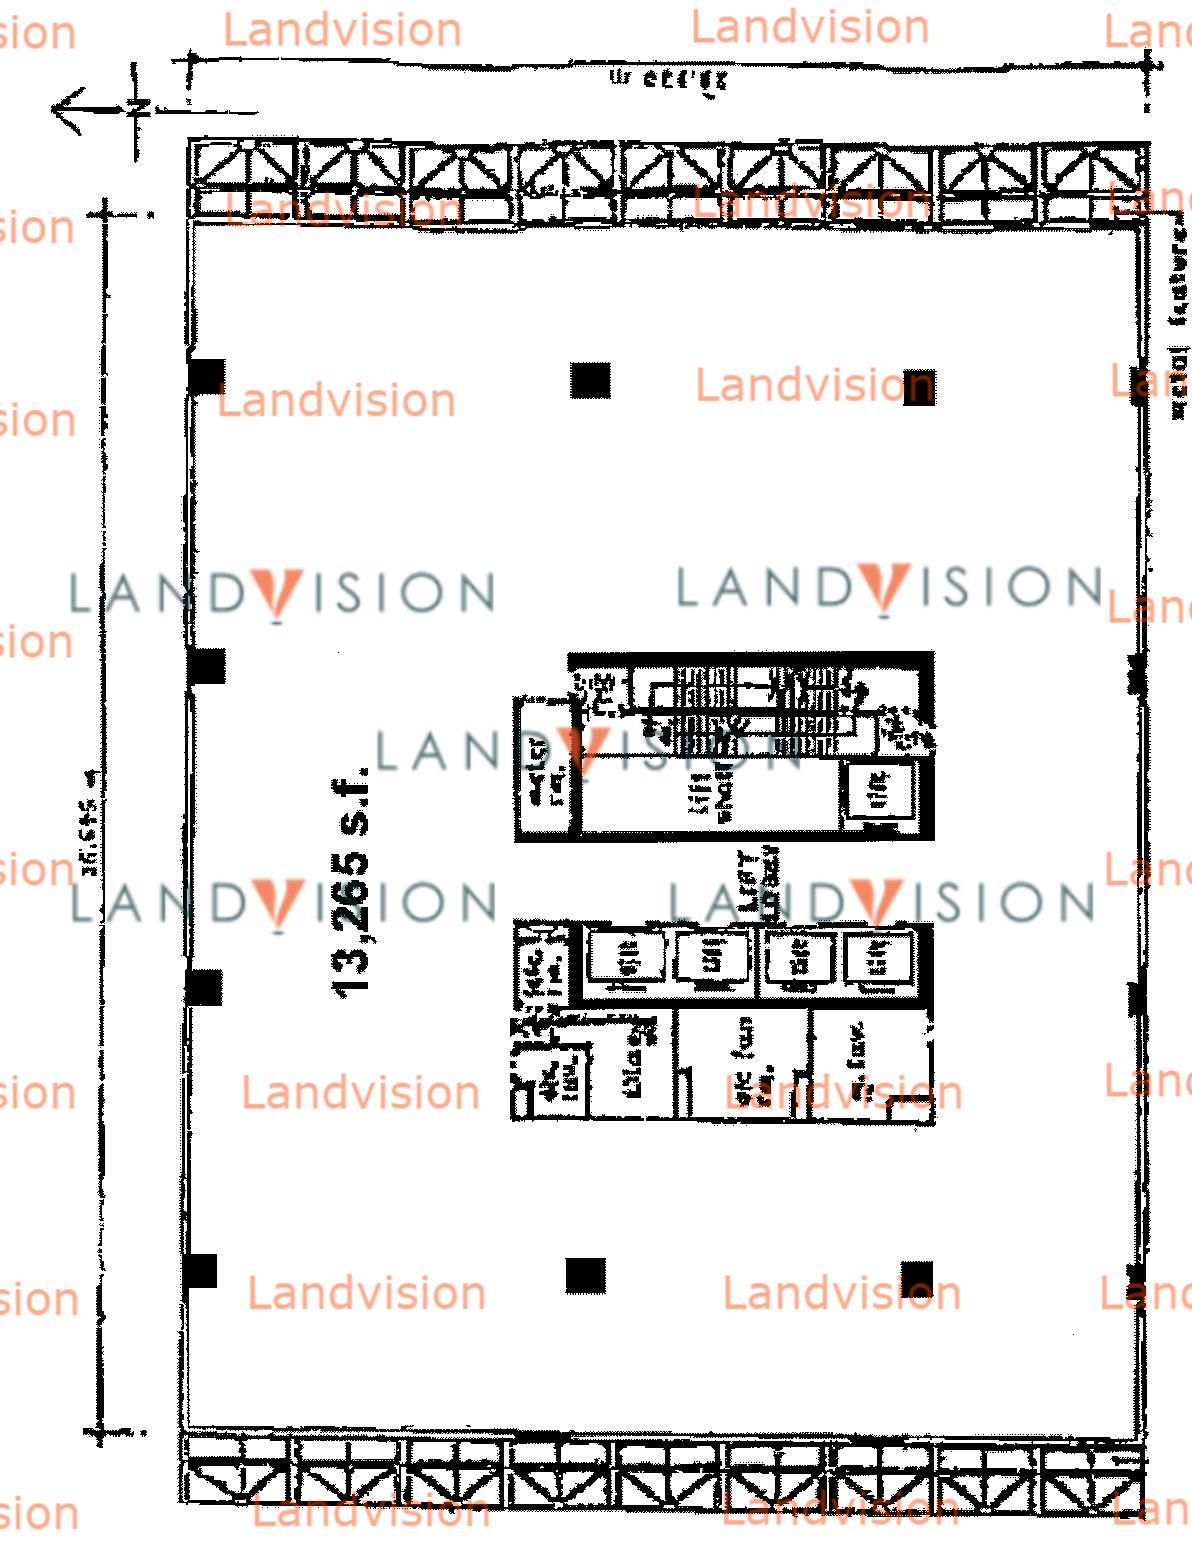 https://www.landvision.com.hk/wp-content/uploads/website/resize/floorplans/001377.JPG